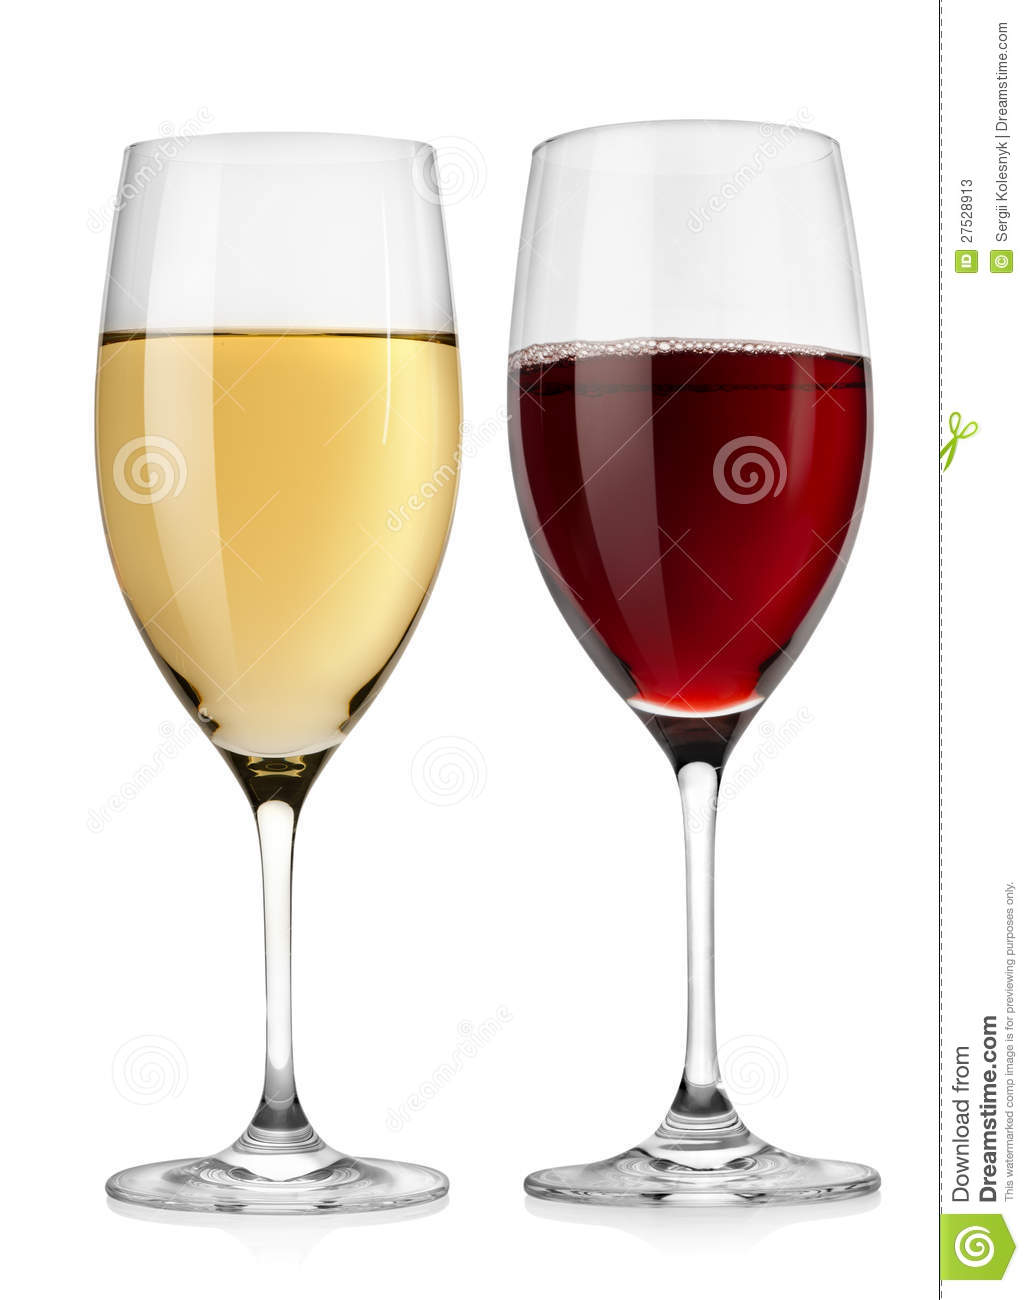 Red Wine Glass And White Wine Glass Stock Image - Image of ...